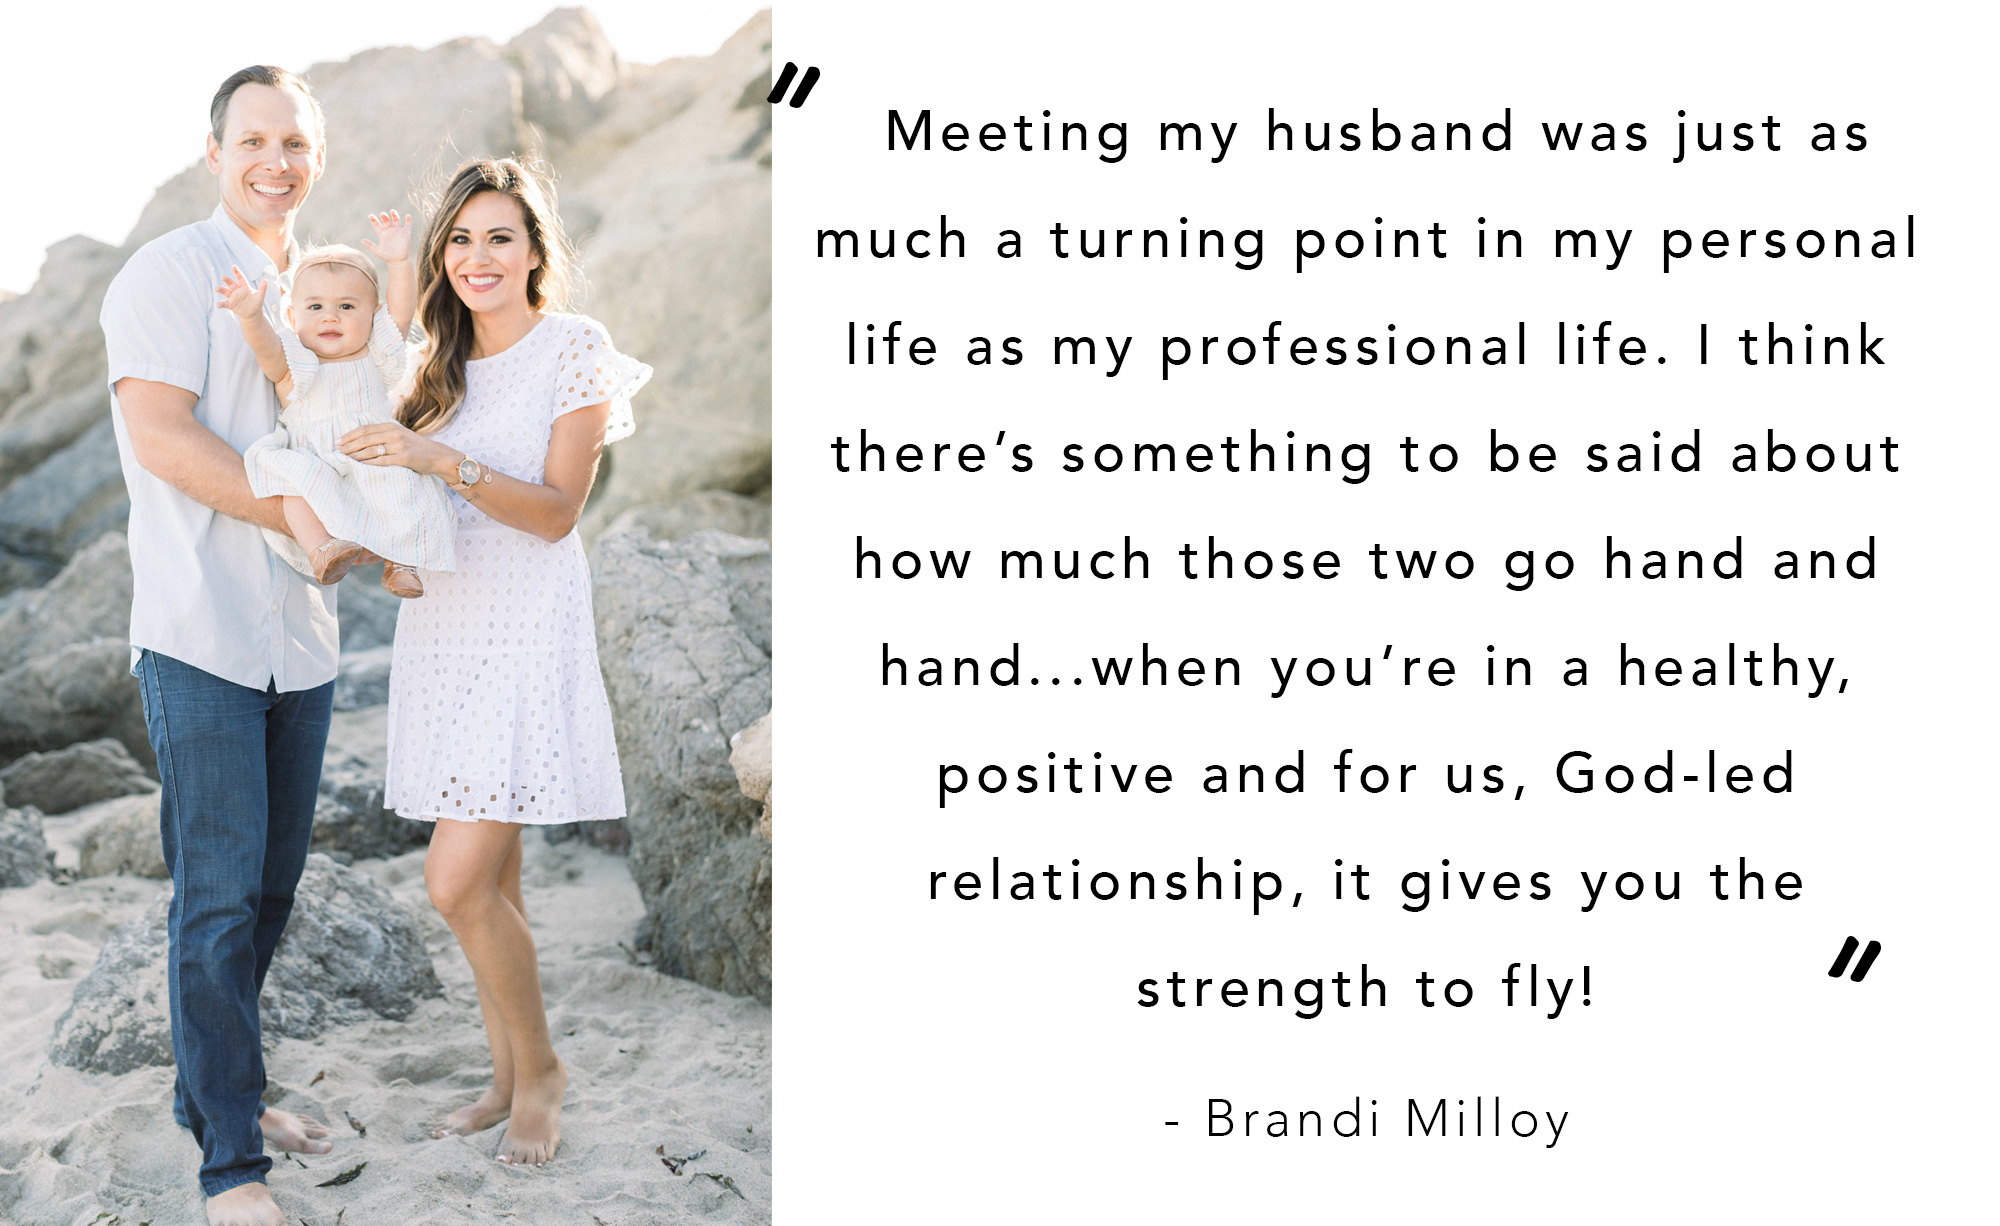 Brandi Milloy, interview with food network host on how to balance motherhood with work and networking and meeting her husband